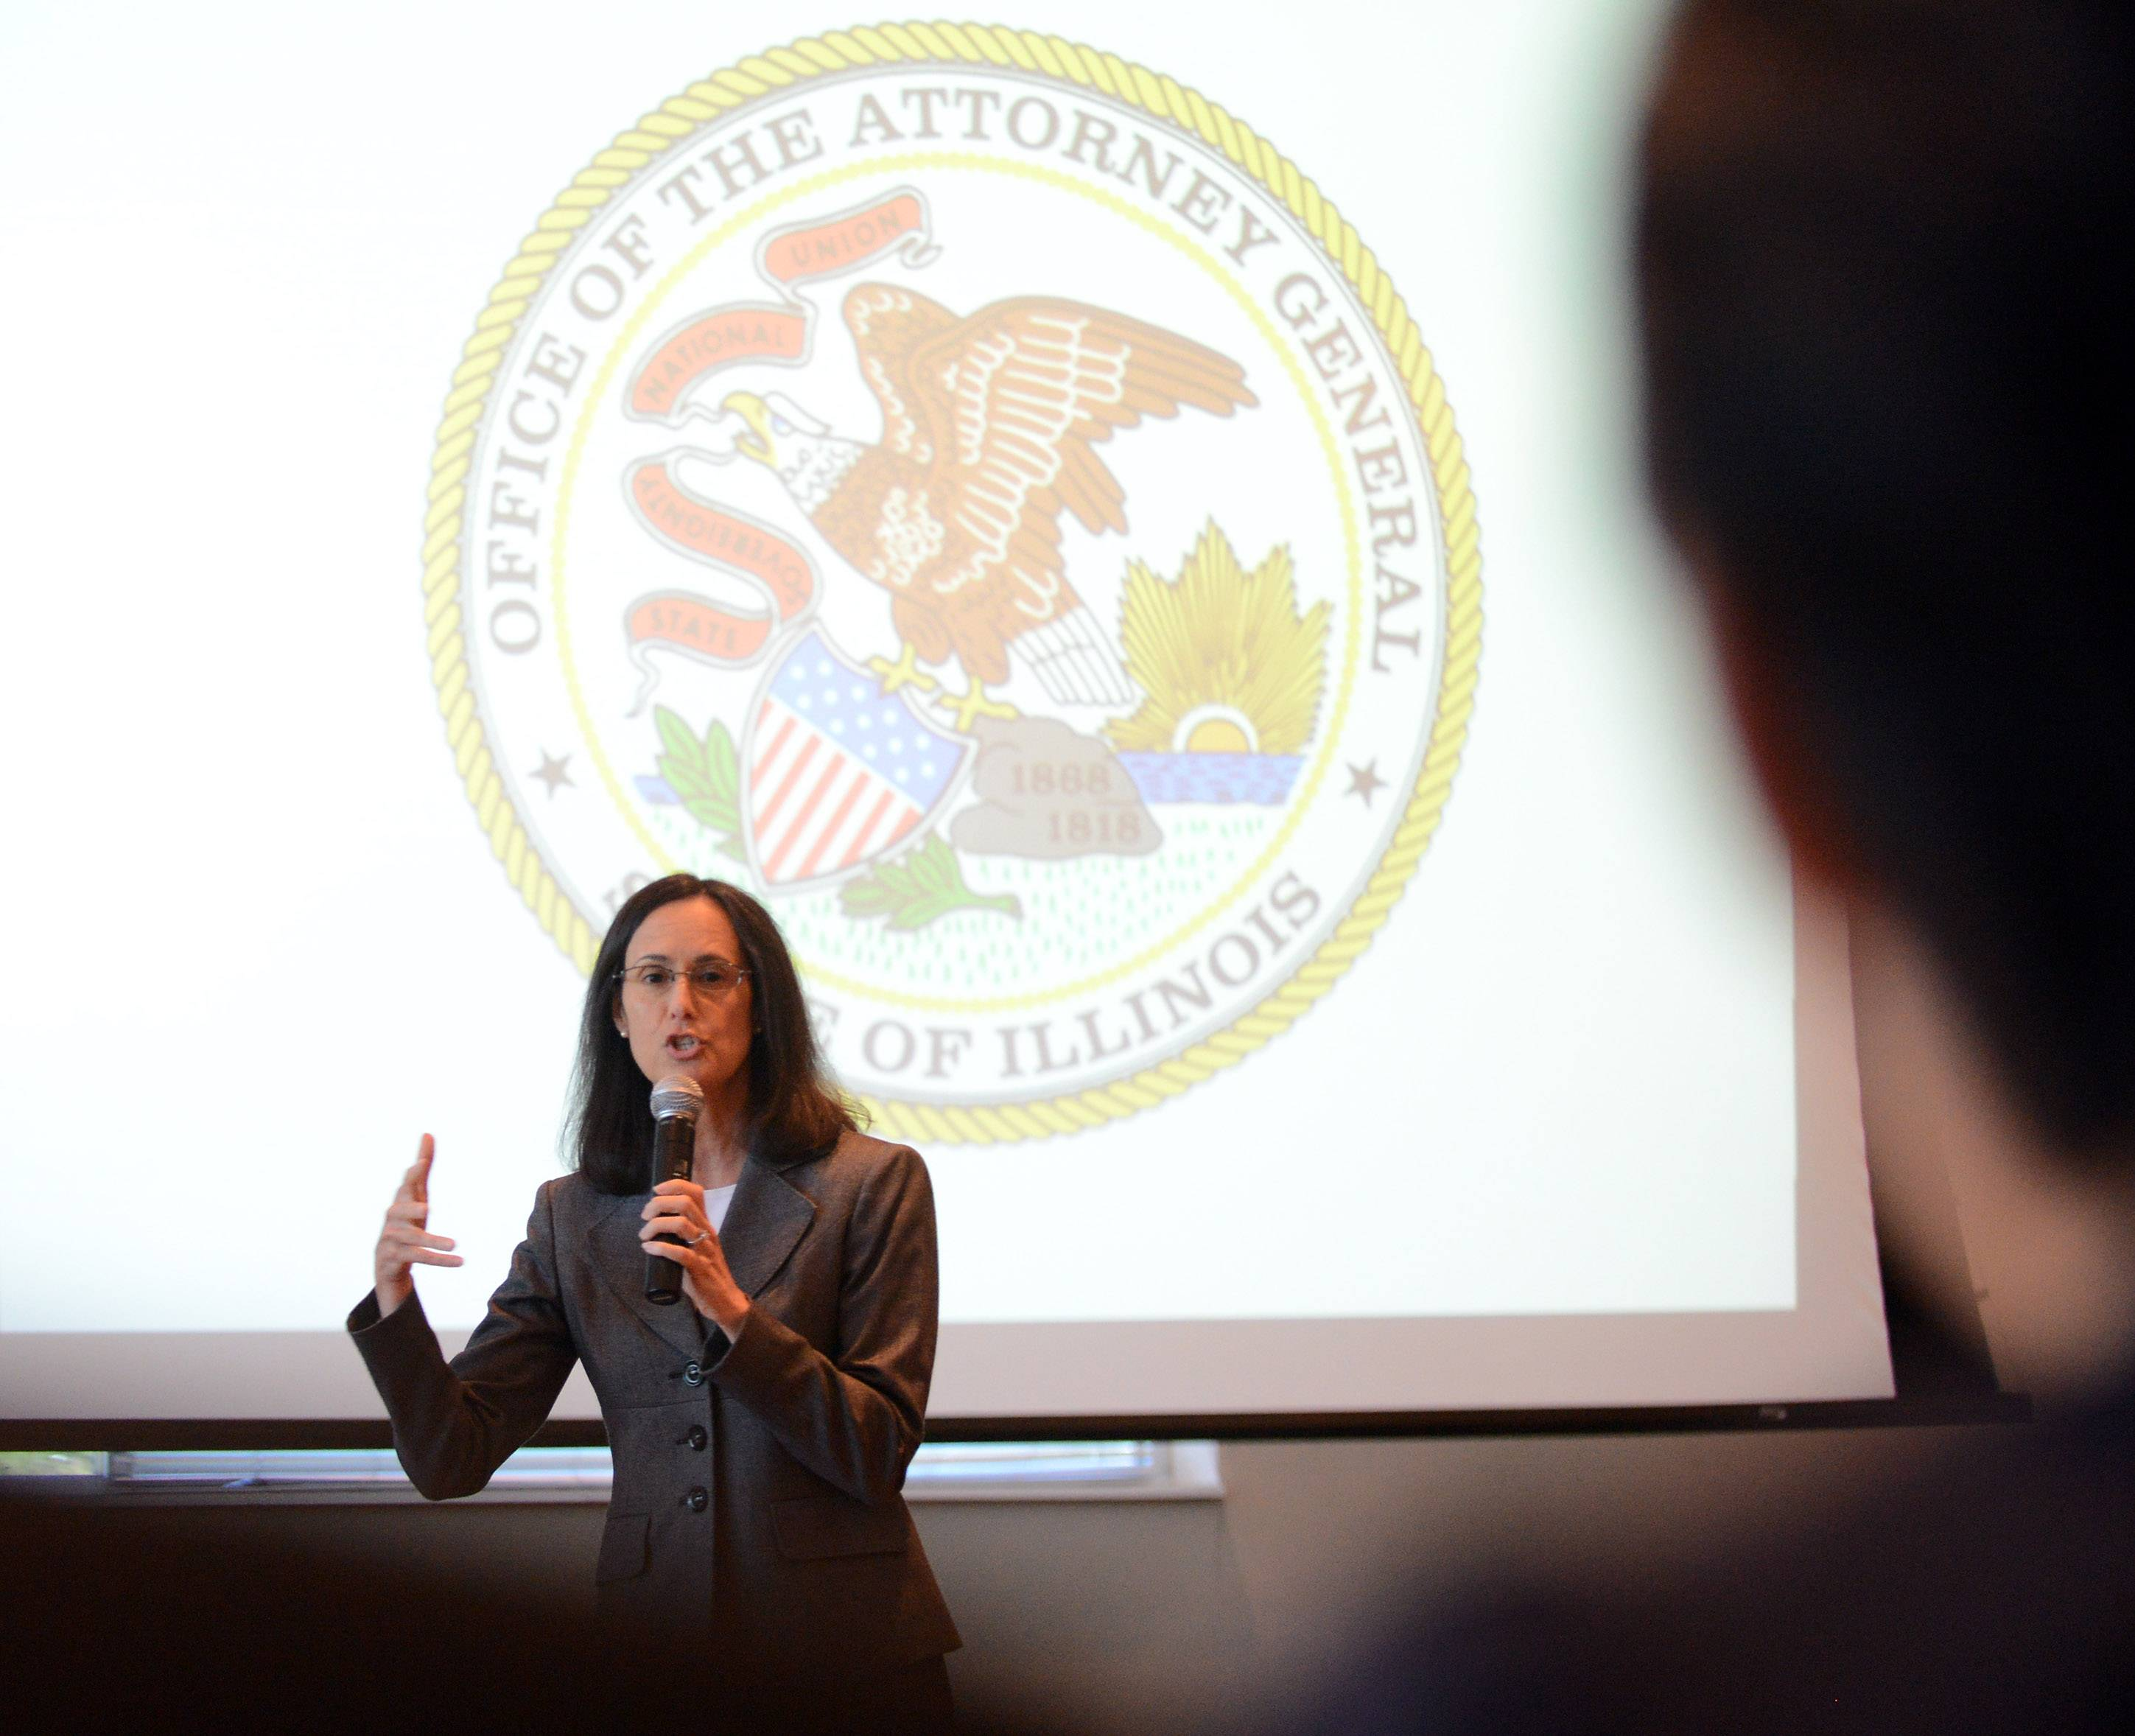 Illinois Attorney General Lisa Madigan speaks at a round-table discussion about how to identify and avoid major consumer scams, including identity theft and home repair fraud, as well as schemes that target seniors.